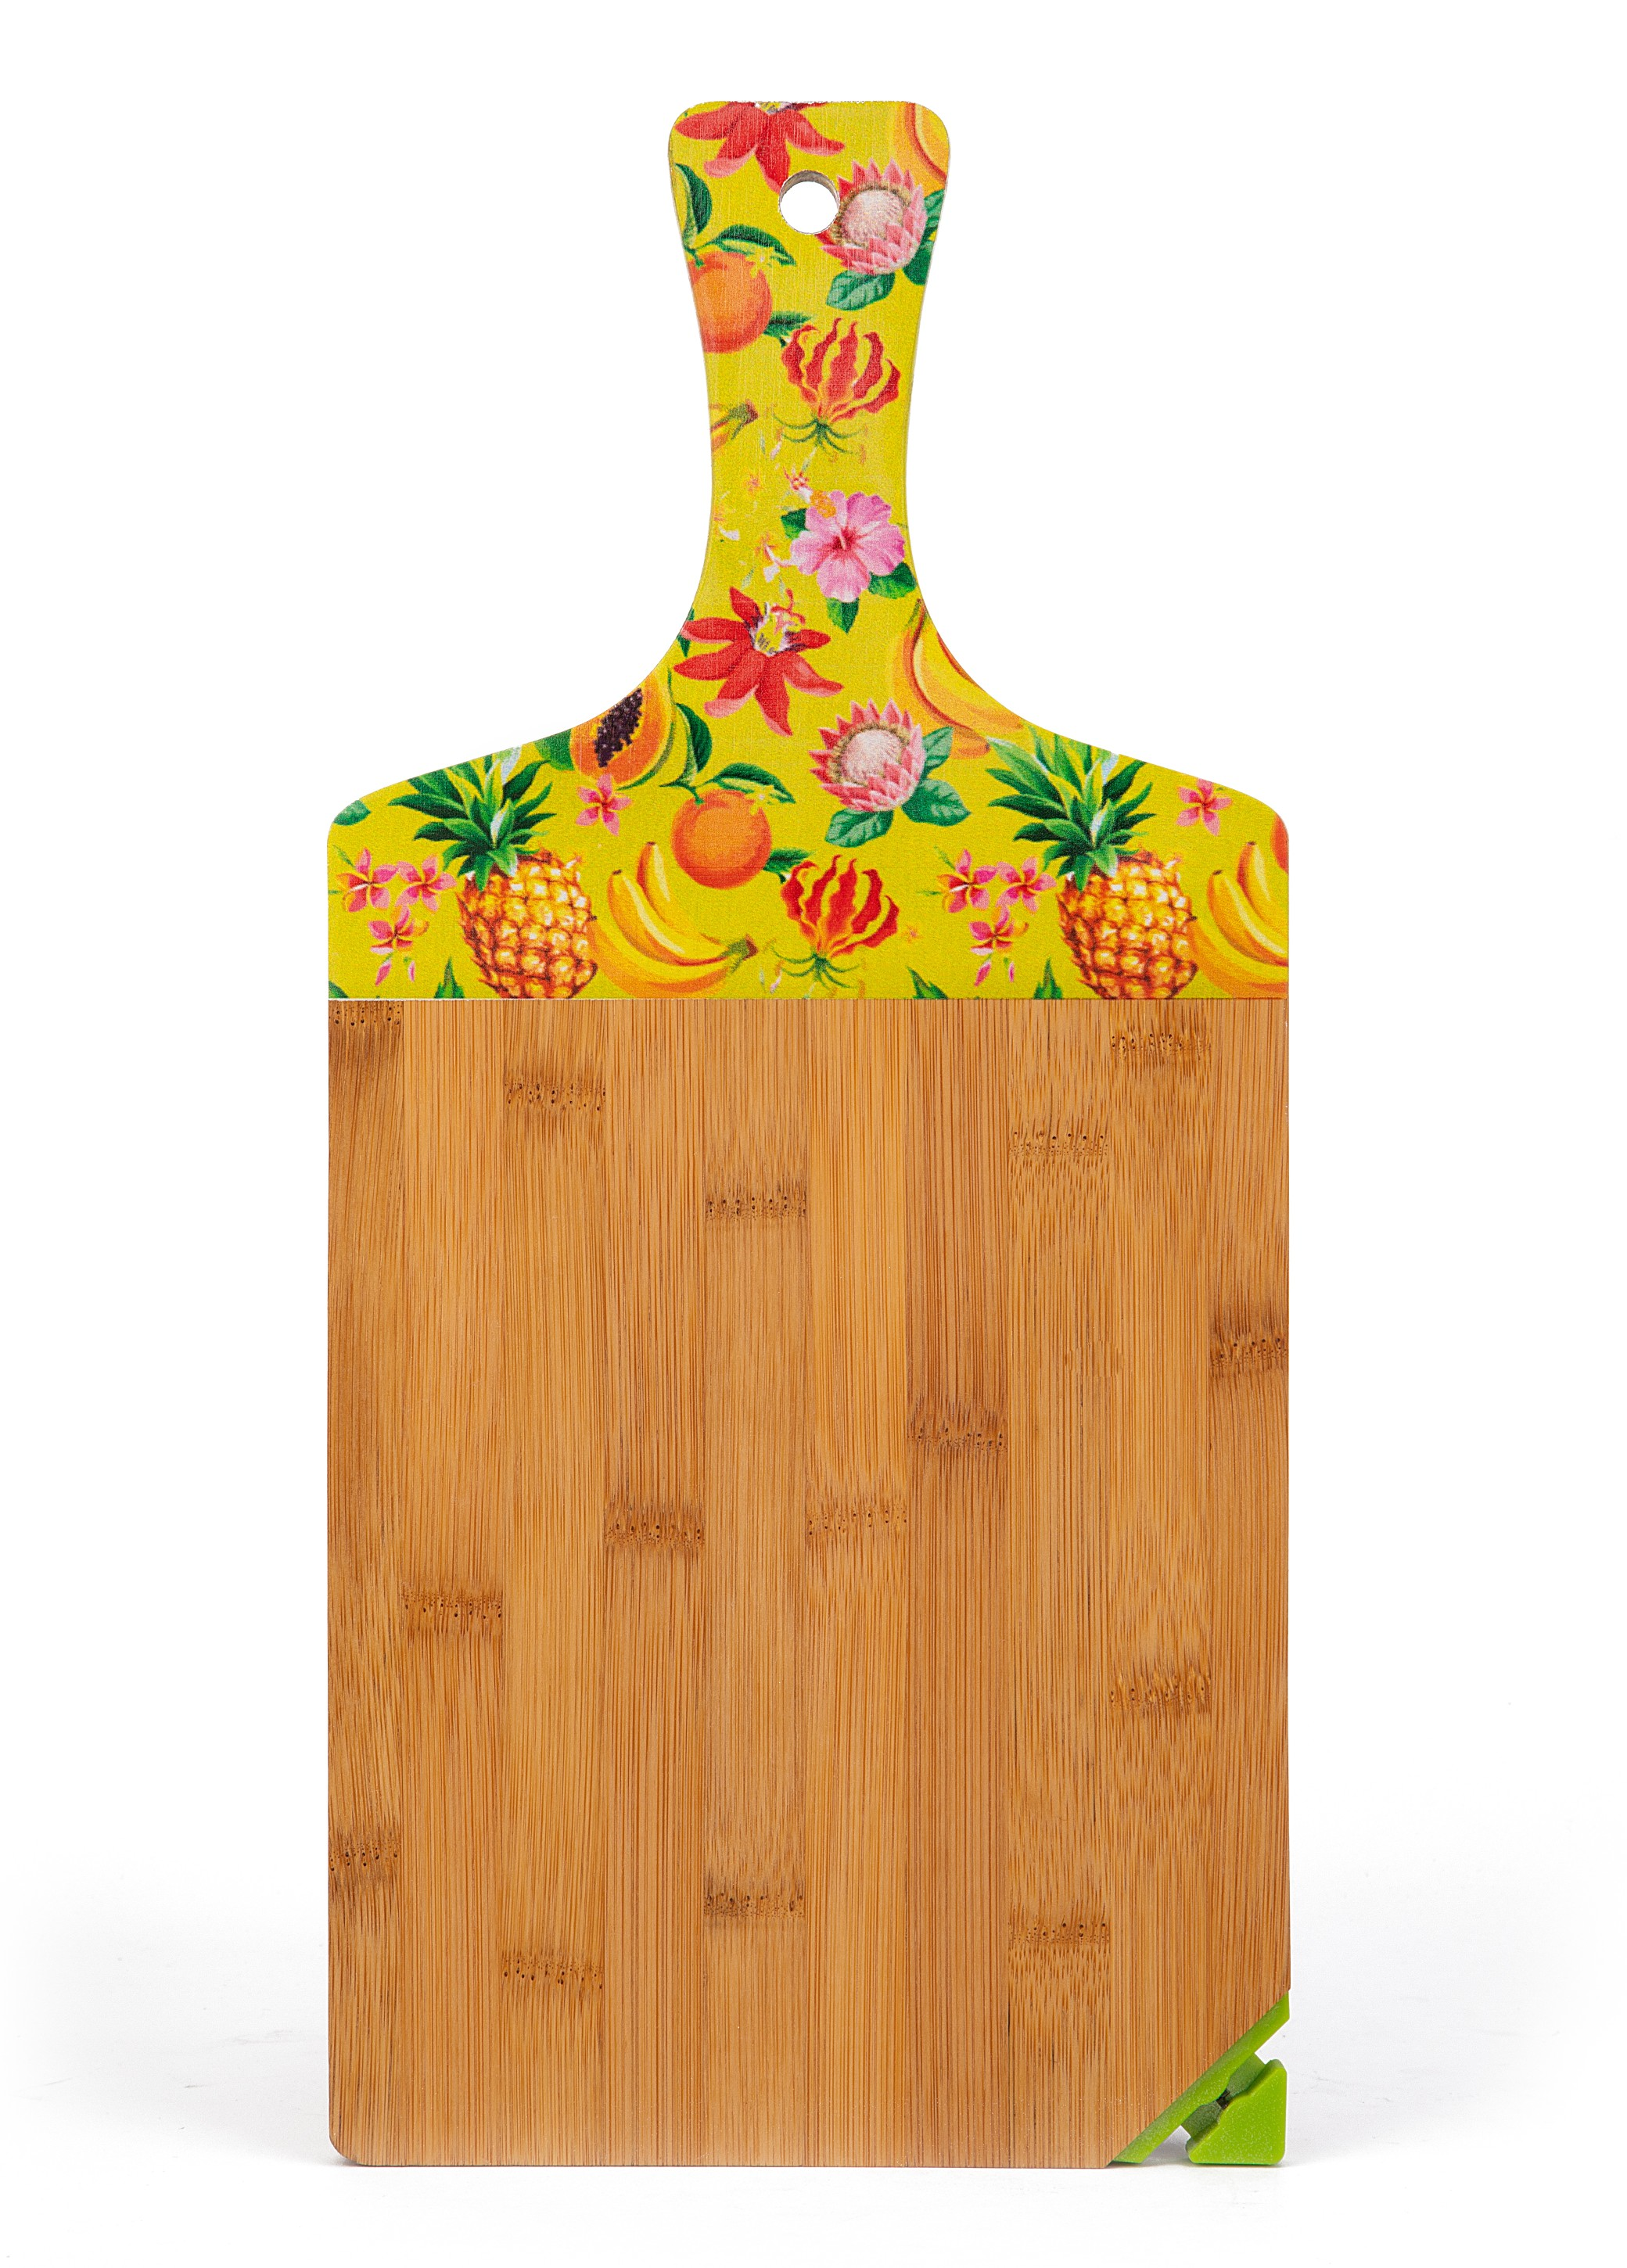 Ss17 Fruity Paddle Chopping Board Wood Chopping Boards in Multicolour Colour by Living Essence